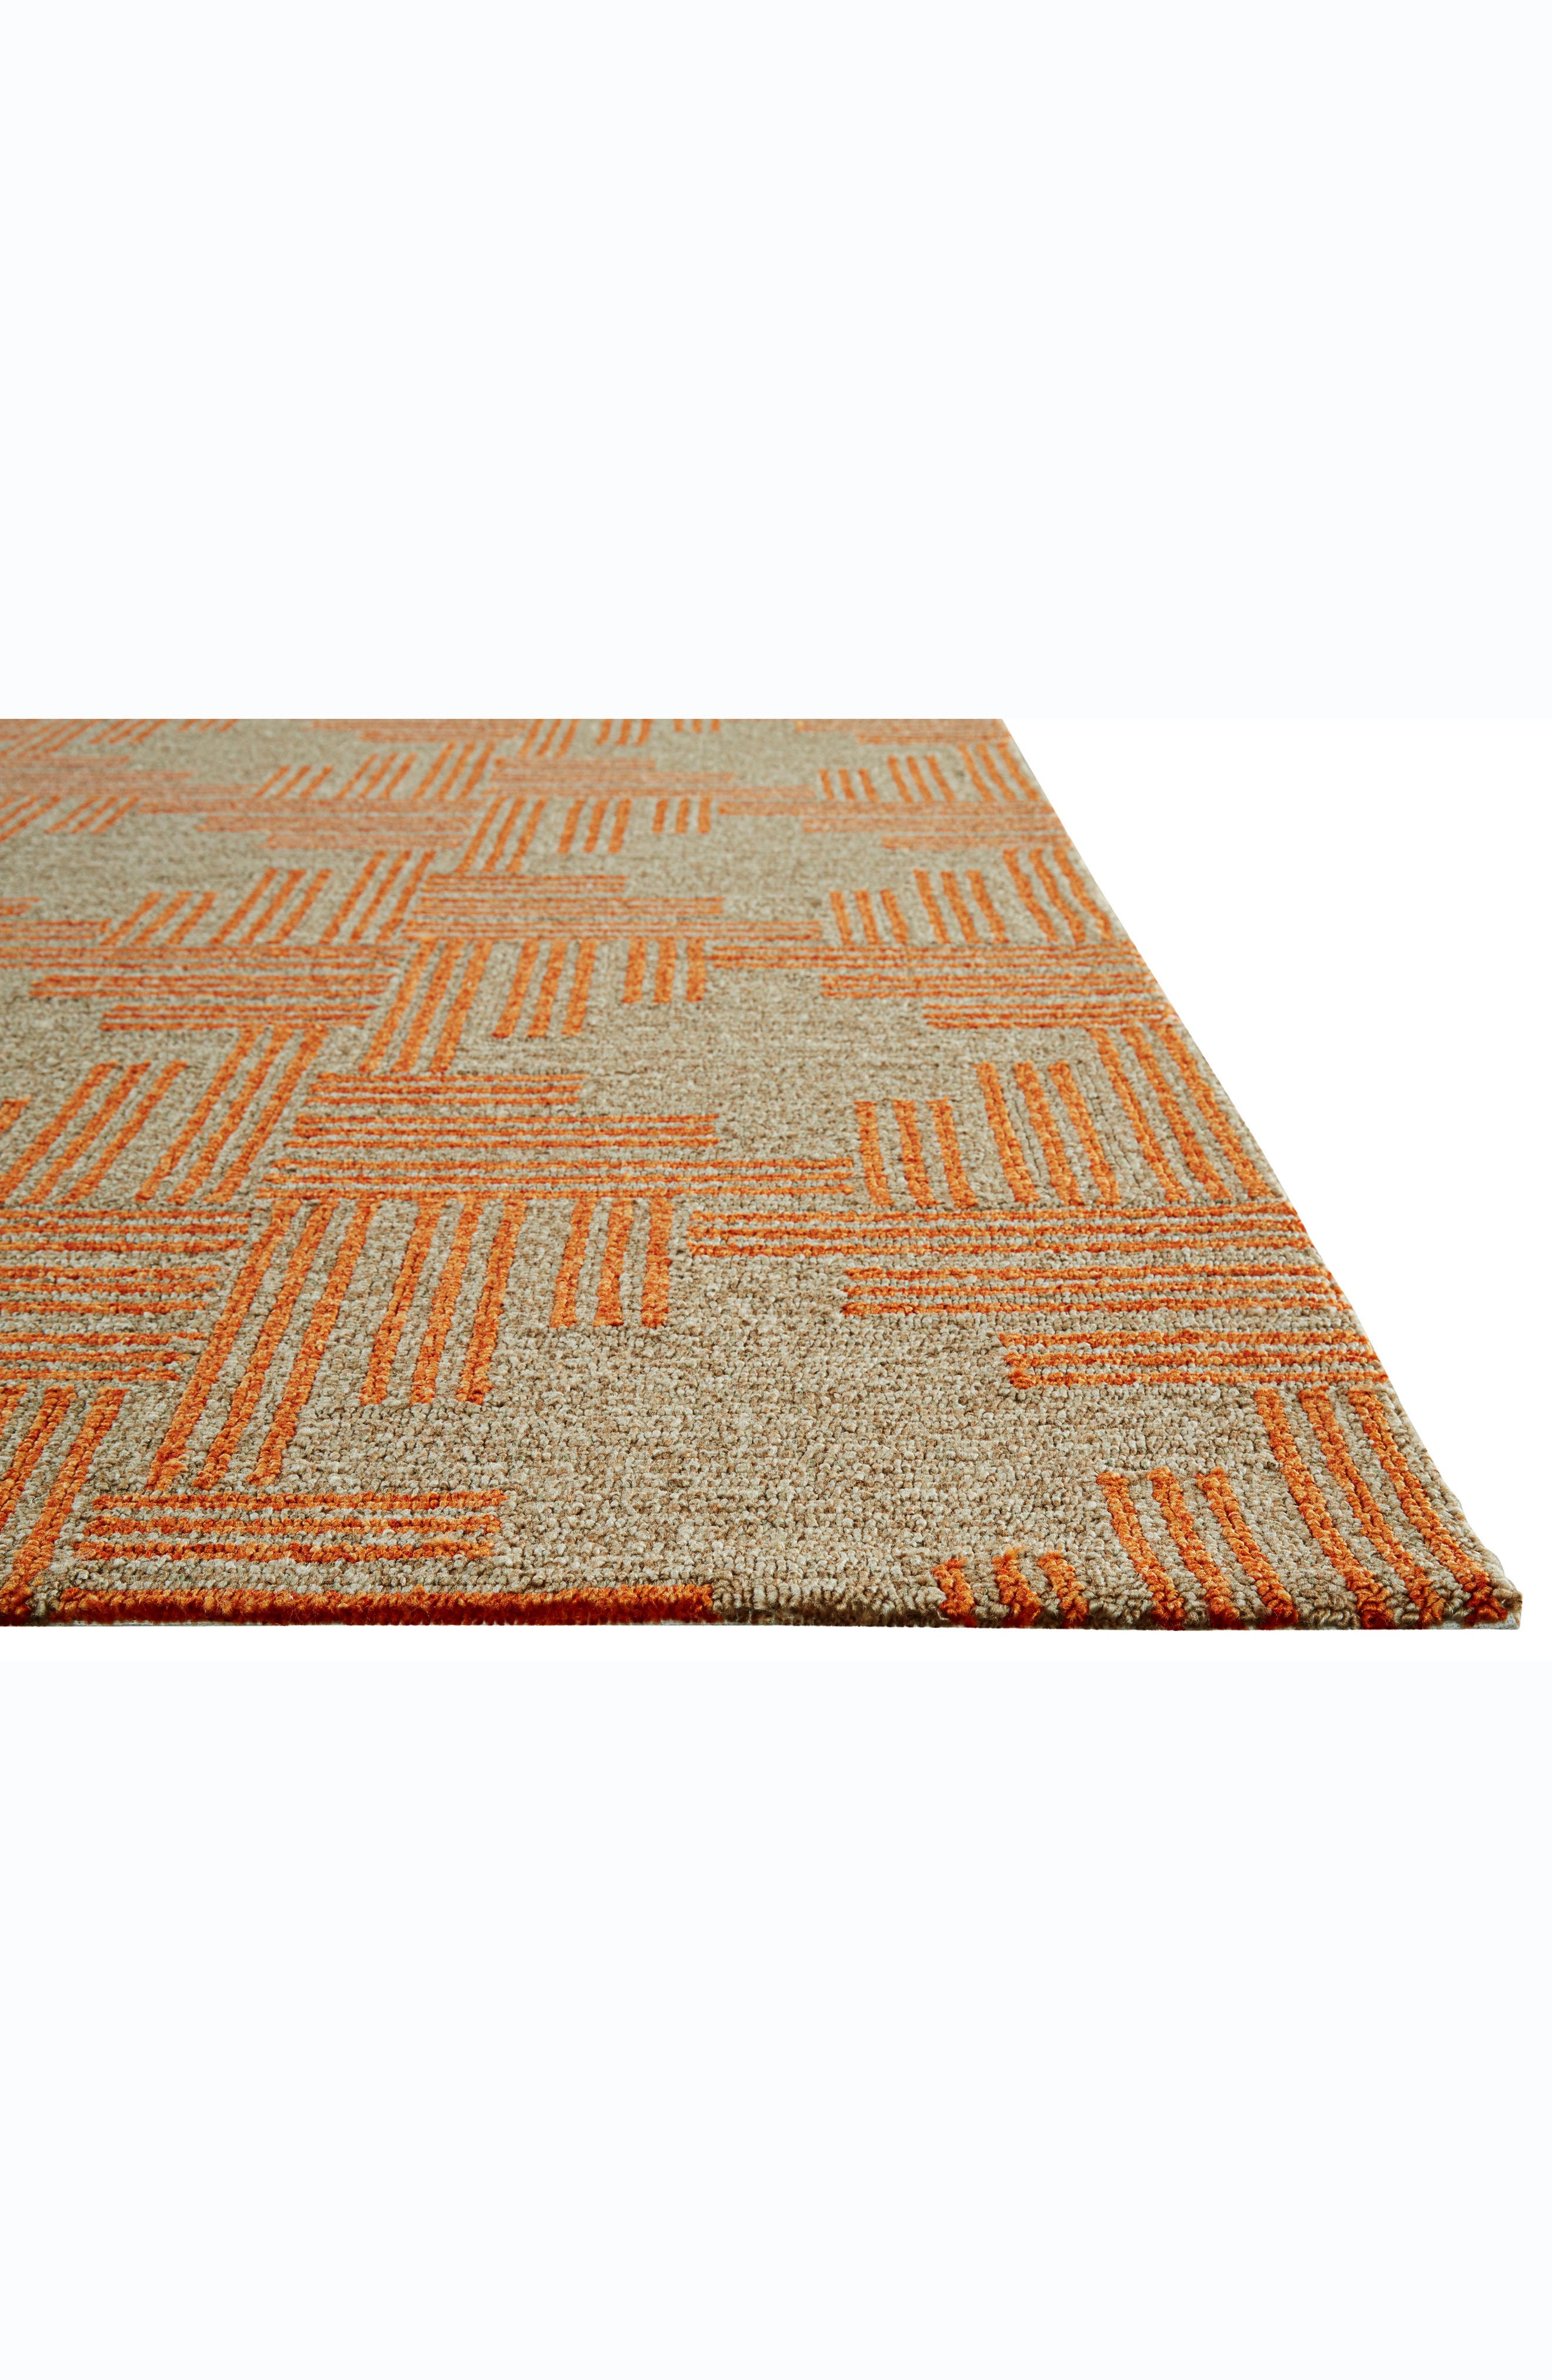 Contemporary Geo Cross Rug,                             Alternate thumbnail 3, color,                             250